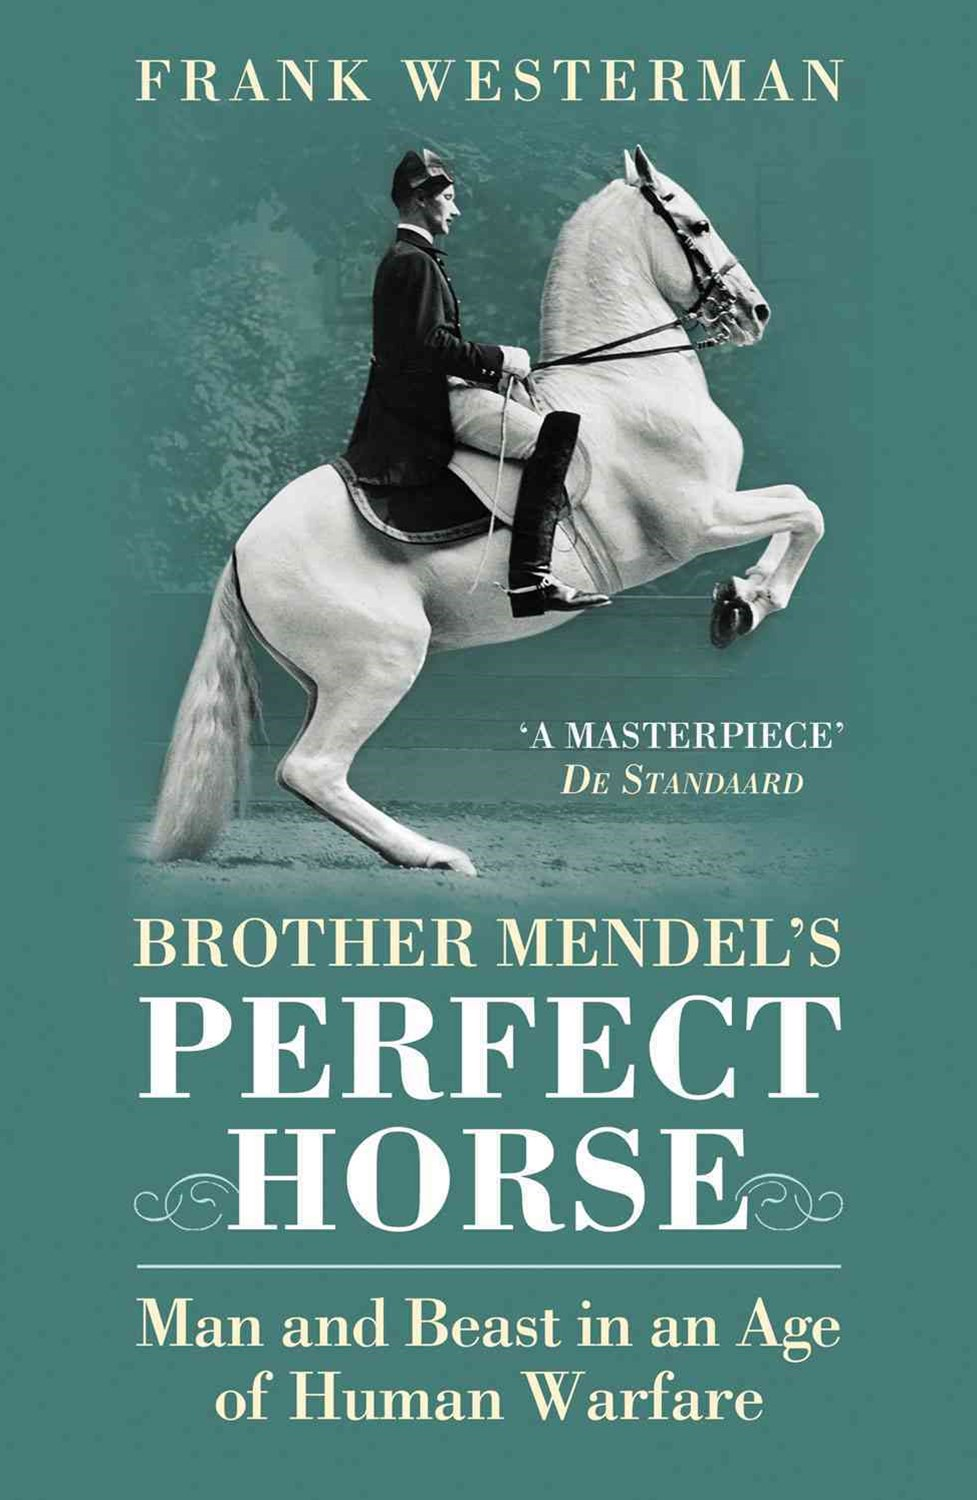 Brother Mendel's Perfect Horse